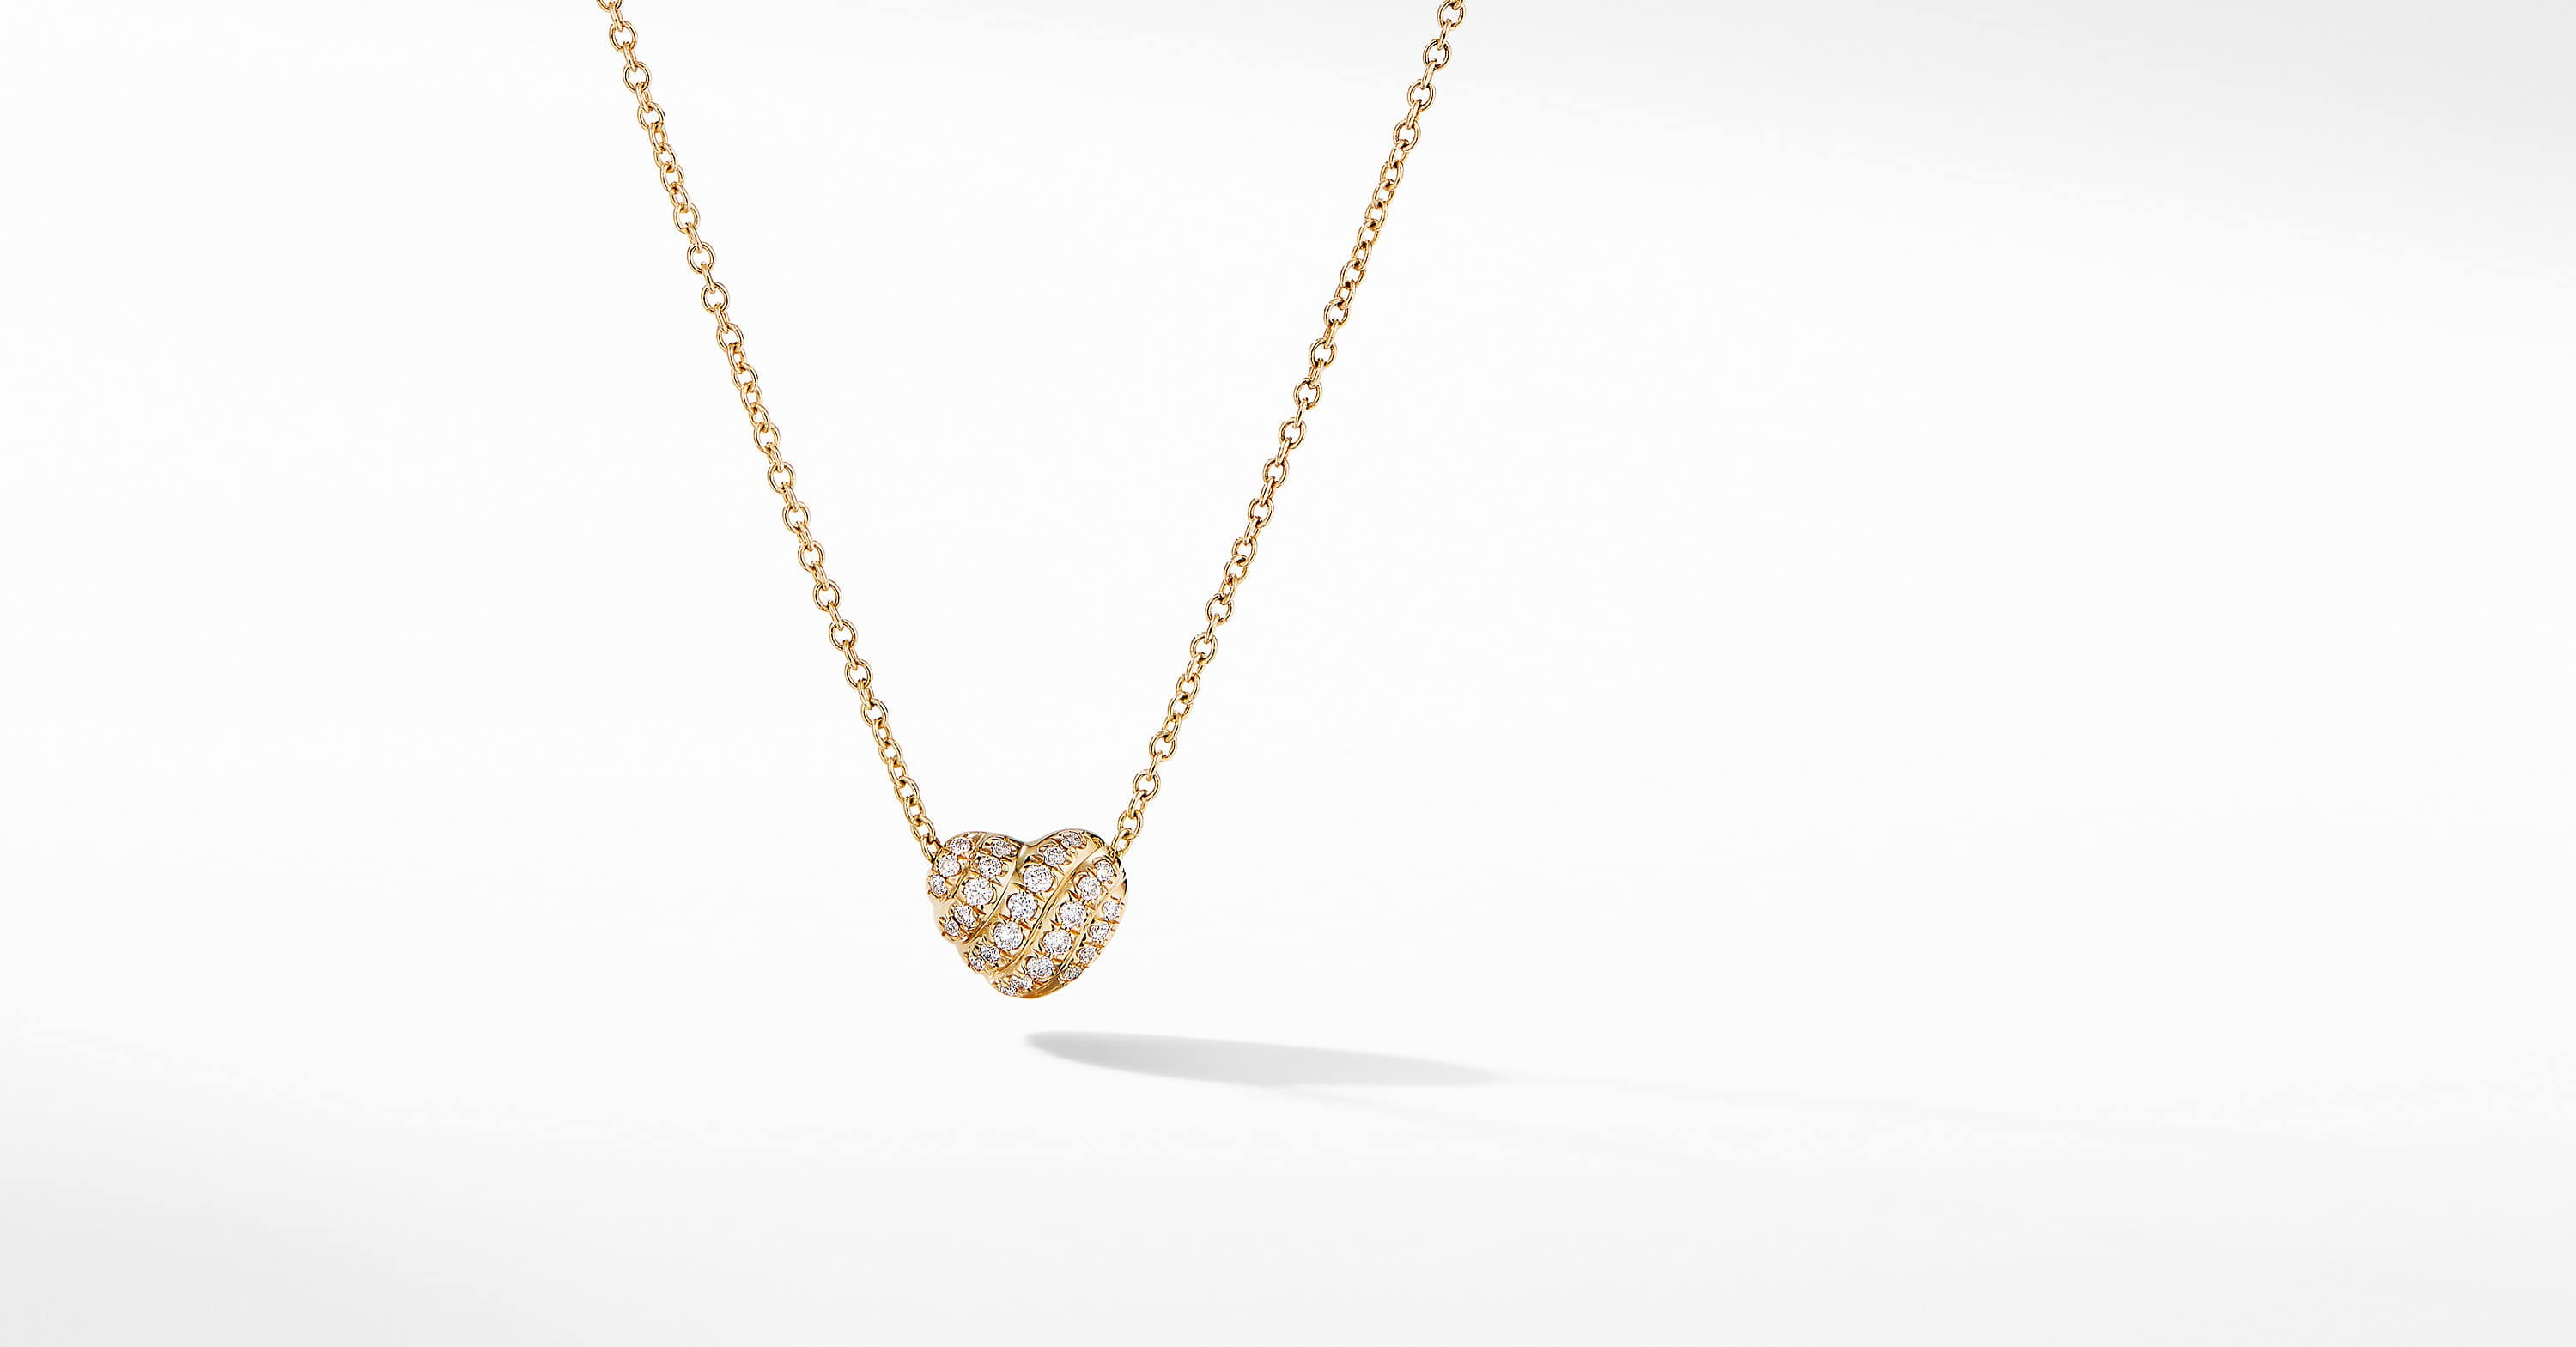 Heart Pendant Necklace in 18K Yellow Gold with Pavé